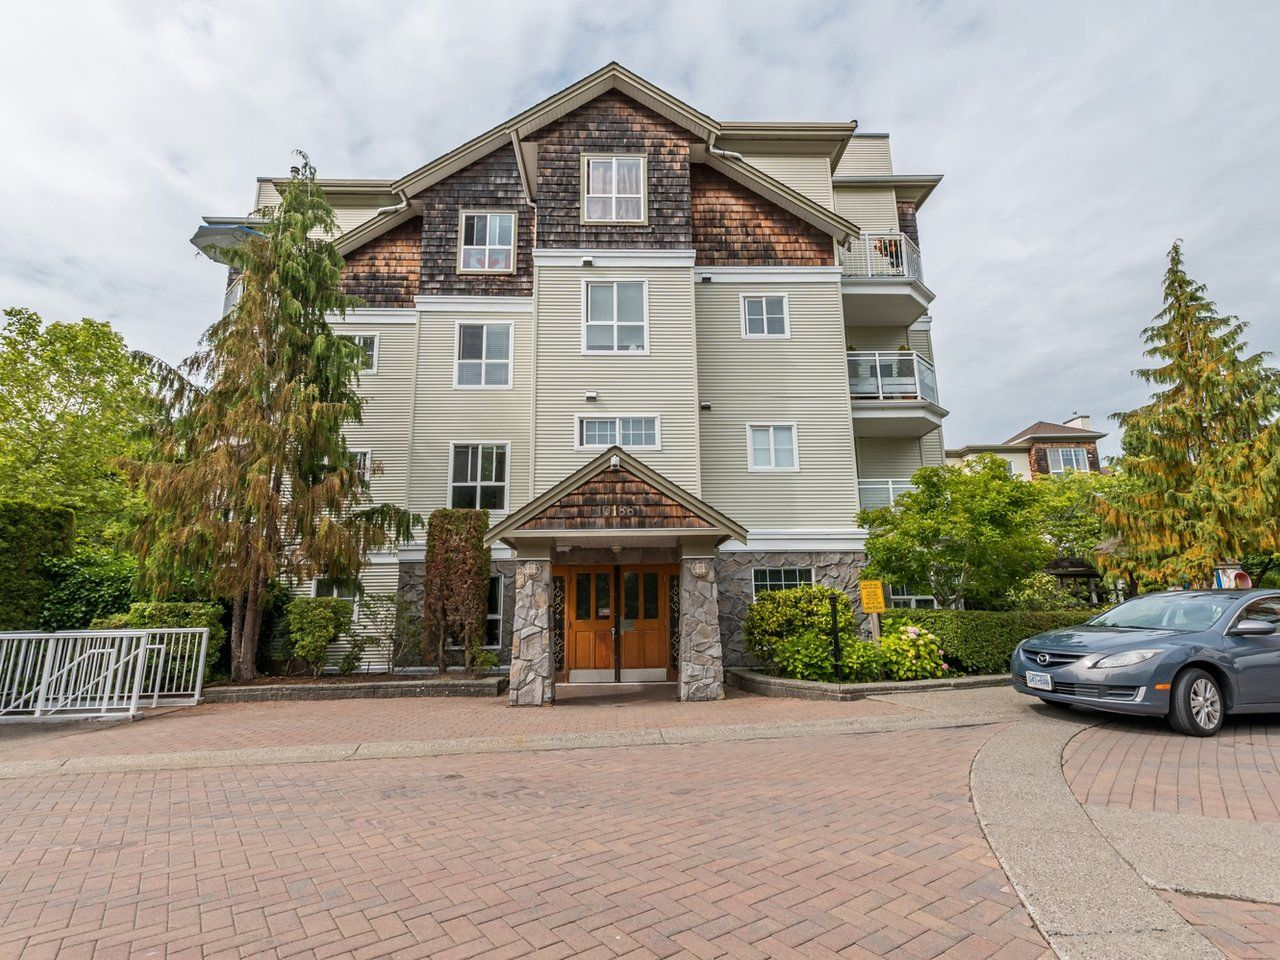 """Main Photo: 104 10188 155 Street in Surrey: Guildford Condo for sale in """"Sommerset"""" (North Surrey)  : MLS®# R2467680"""